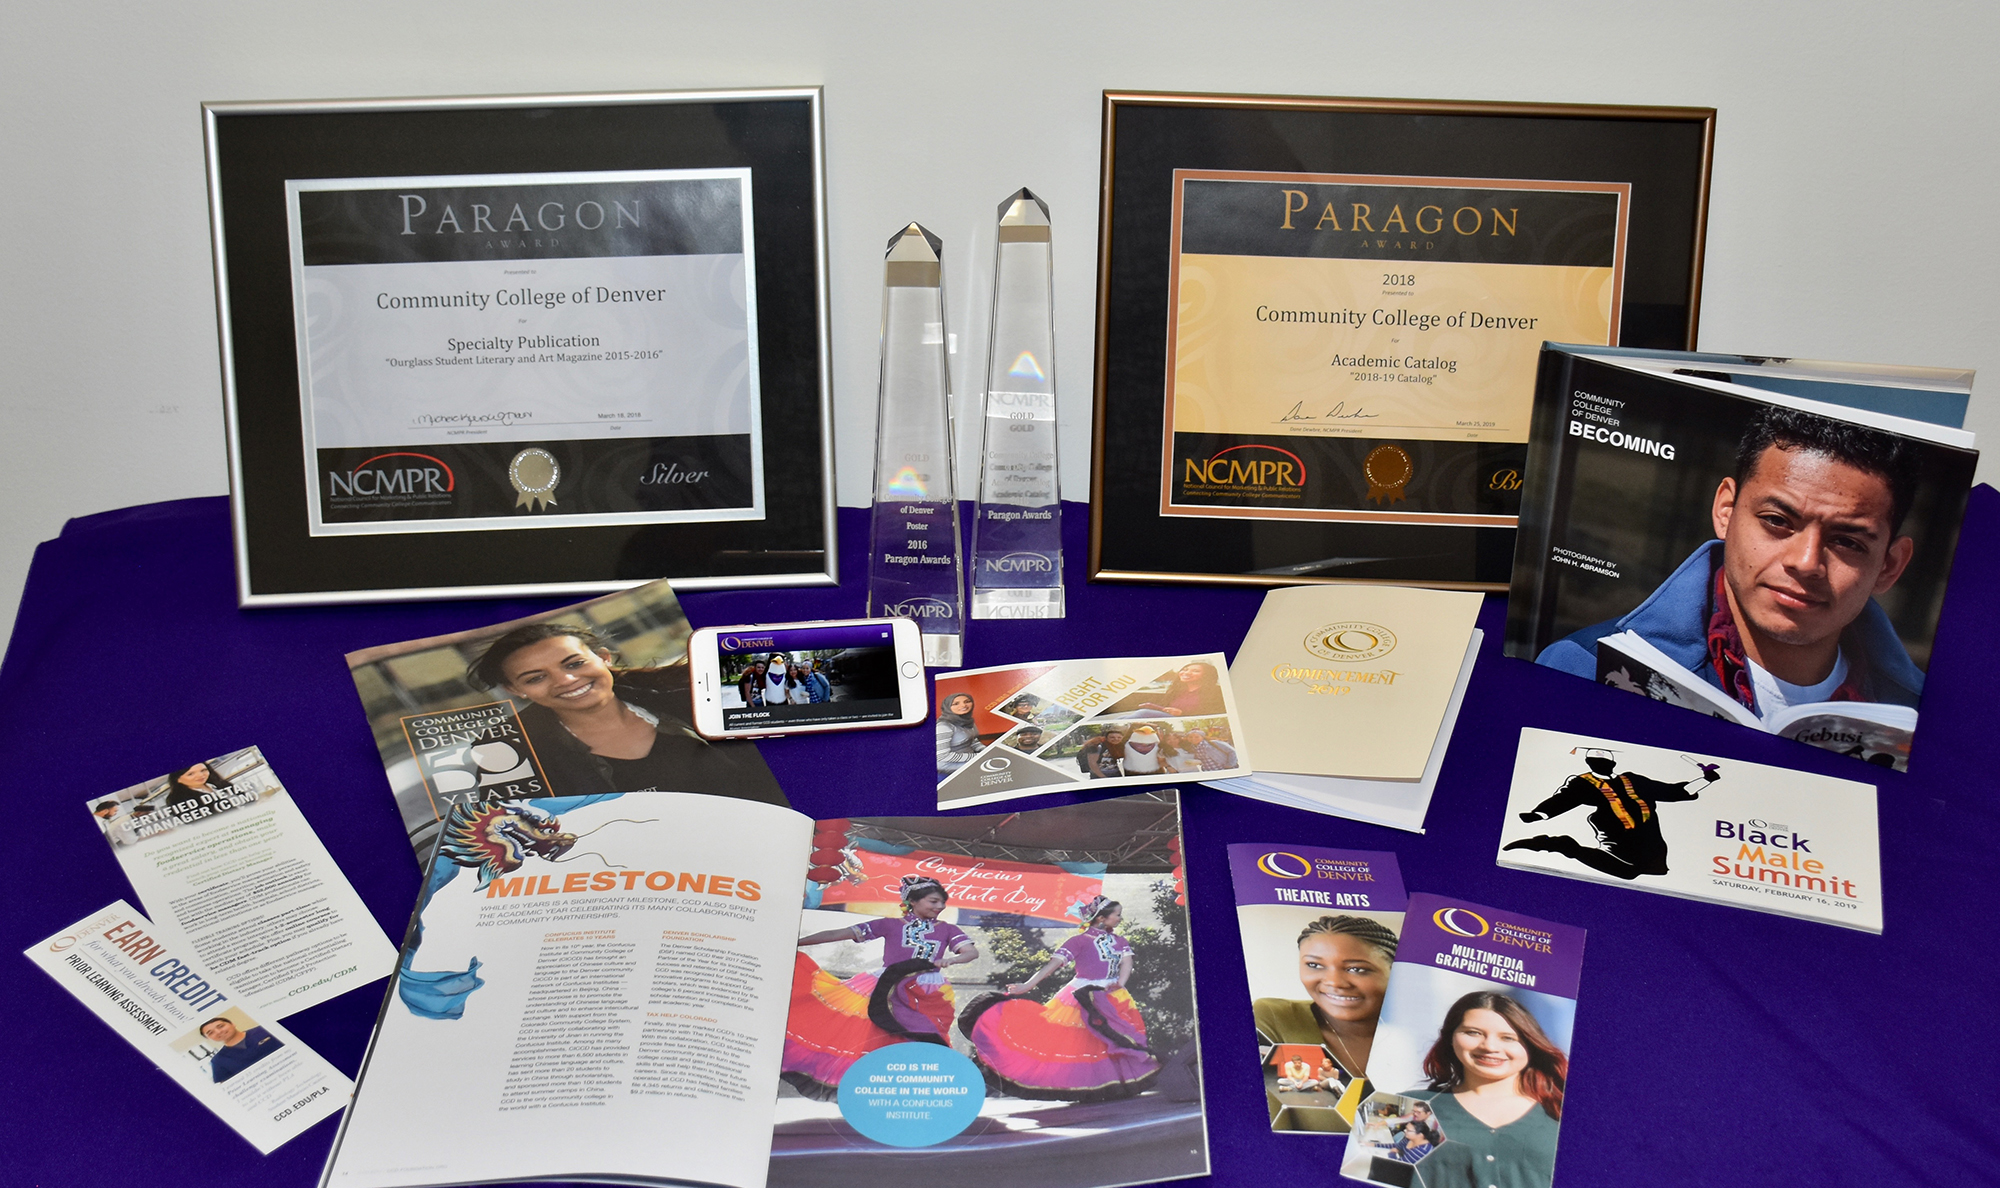 grouping of awards, publicaitons and website